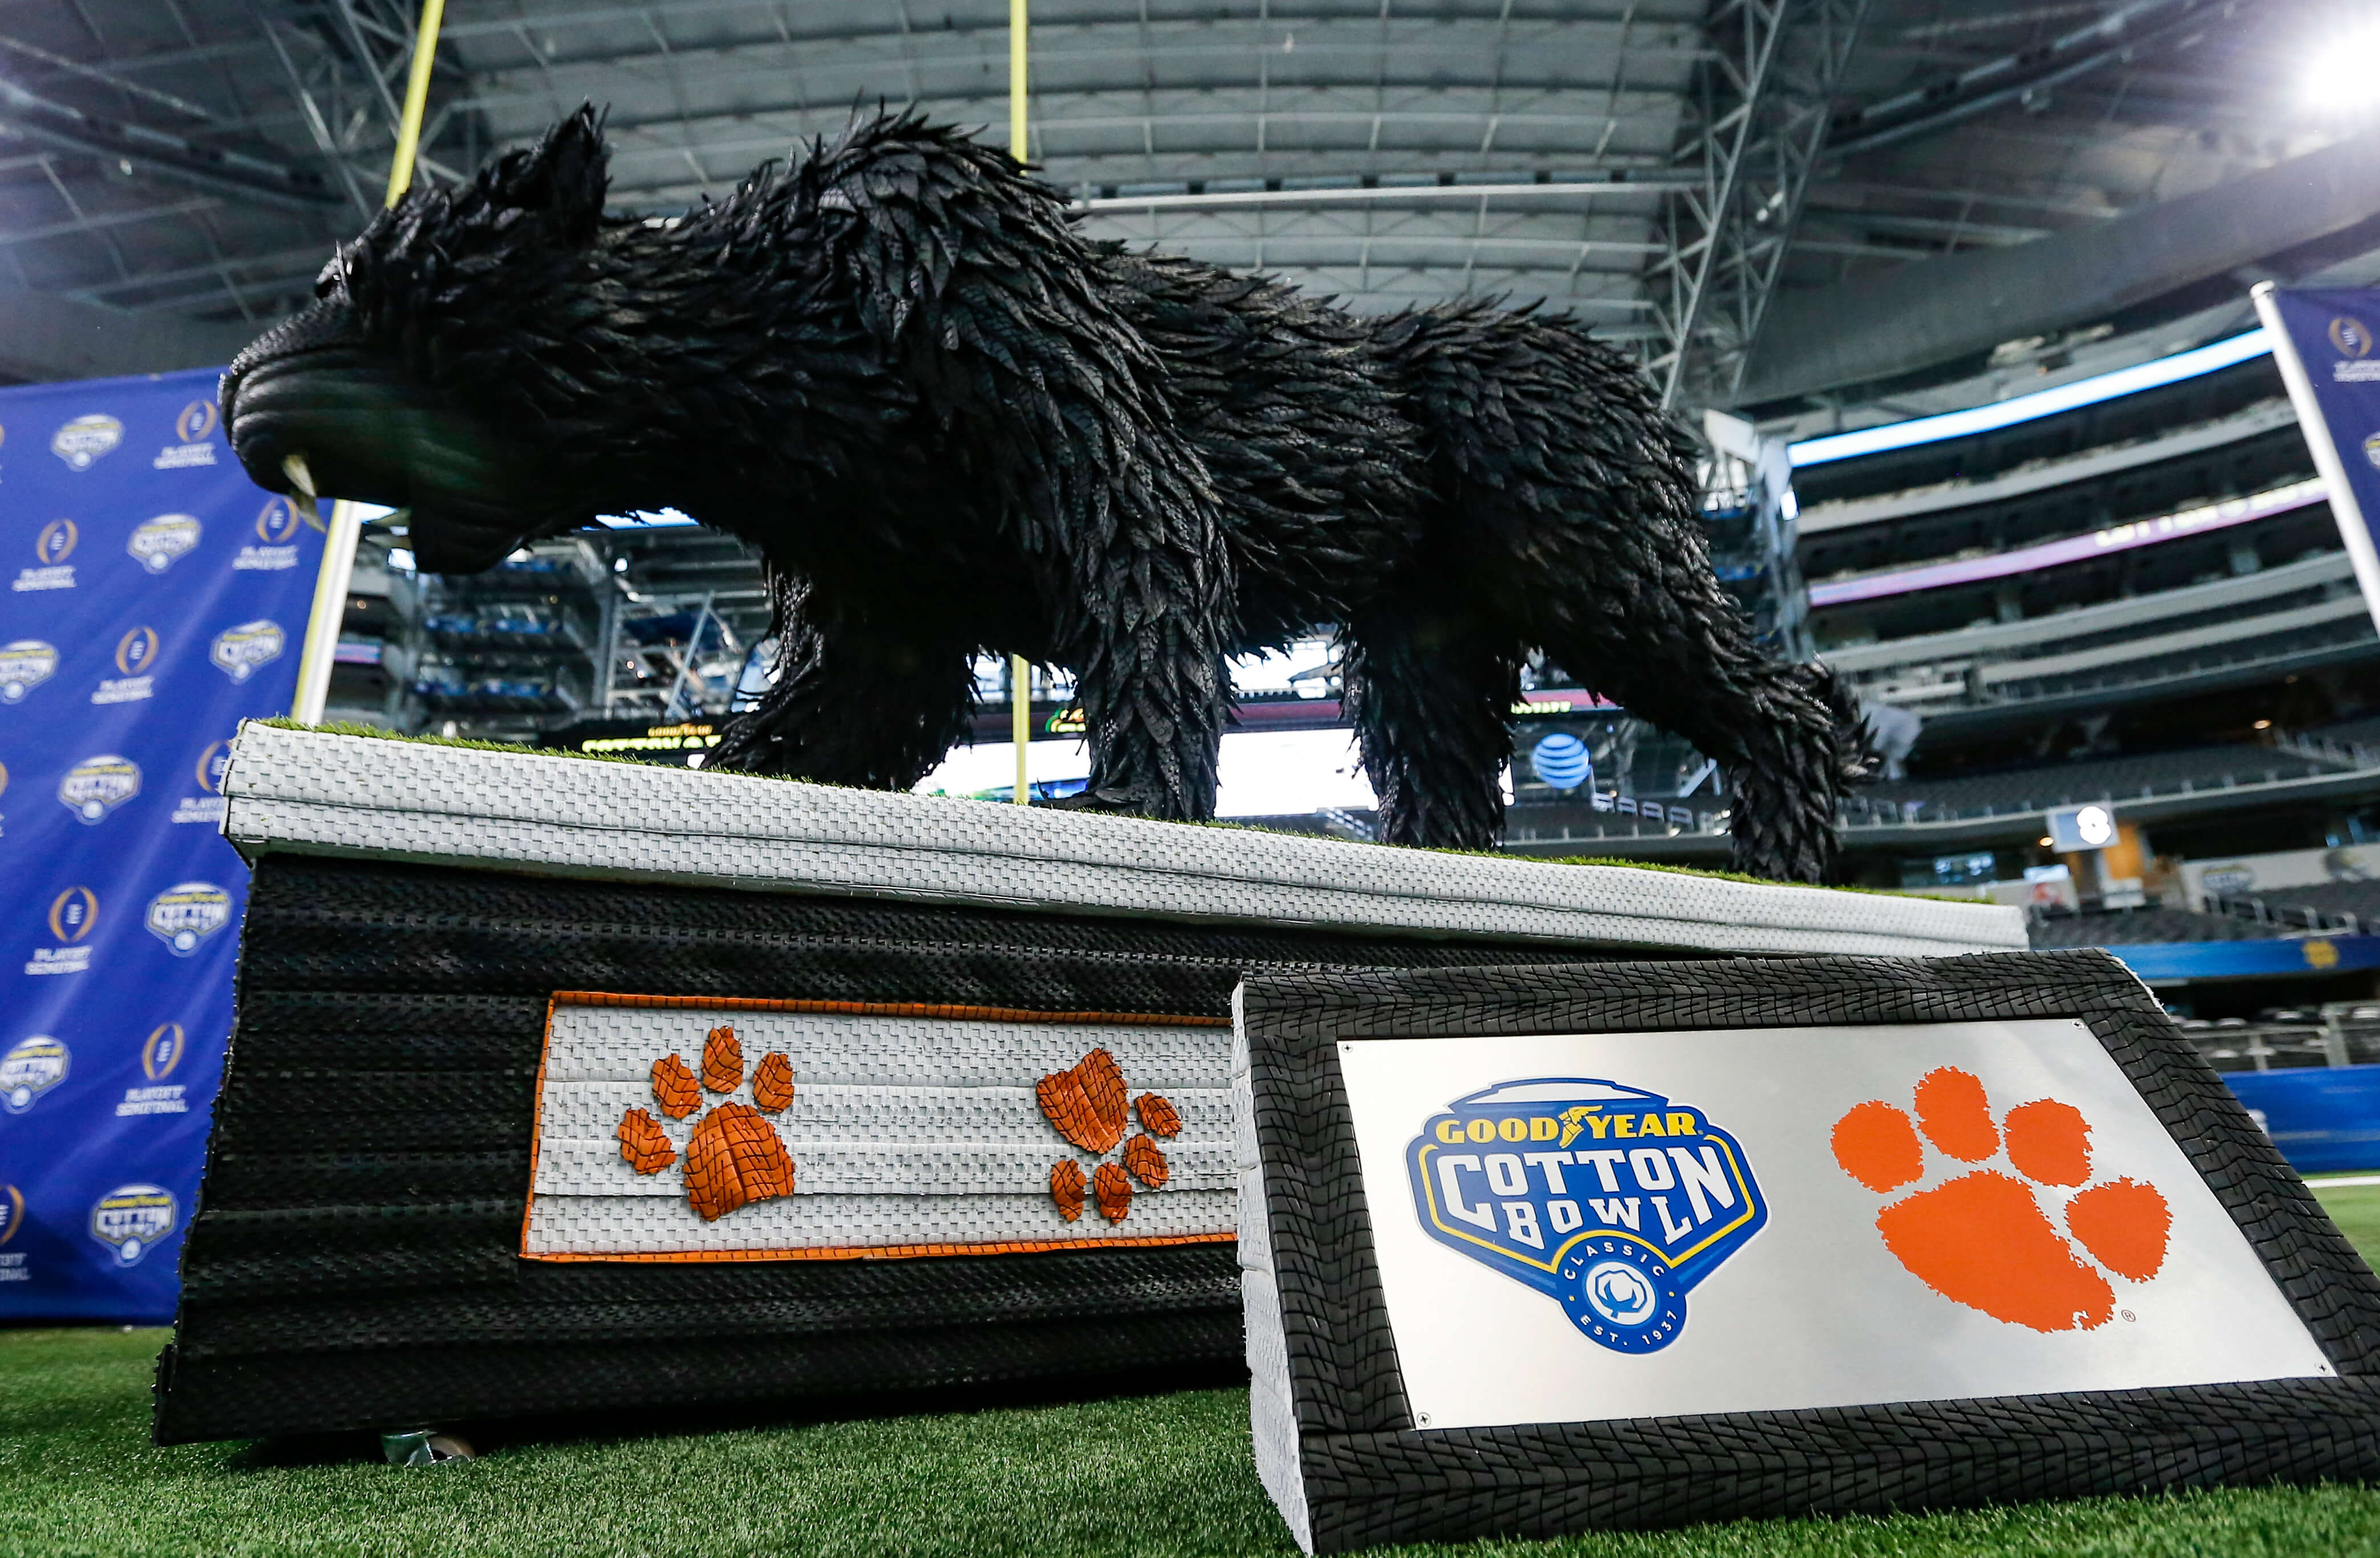 TMA paired its expertise in sports marketing with experiential to create a high-energy marketing activation for the 83rd Goodyear Cotton Bowl. Even the mascots got involved.